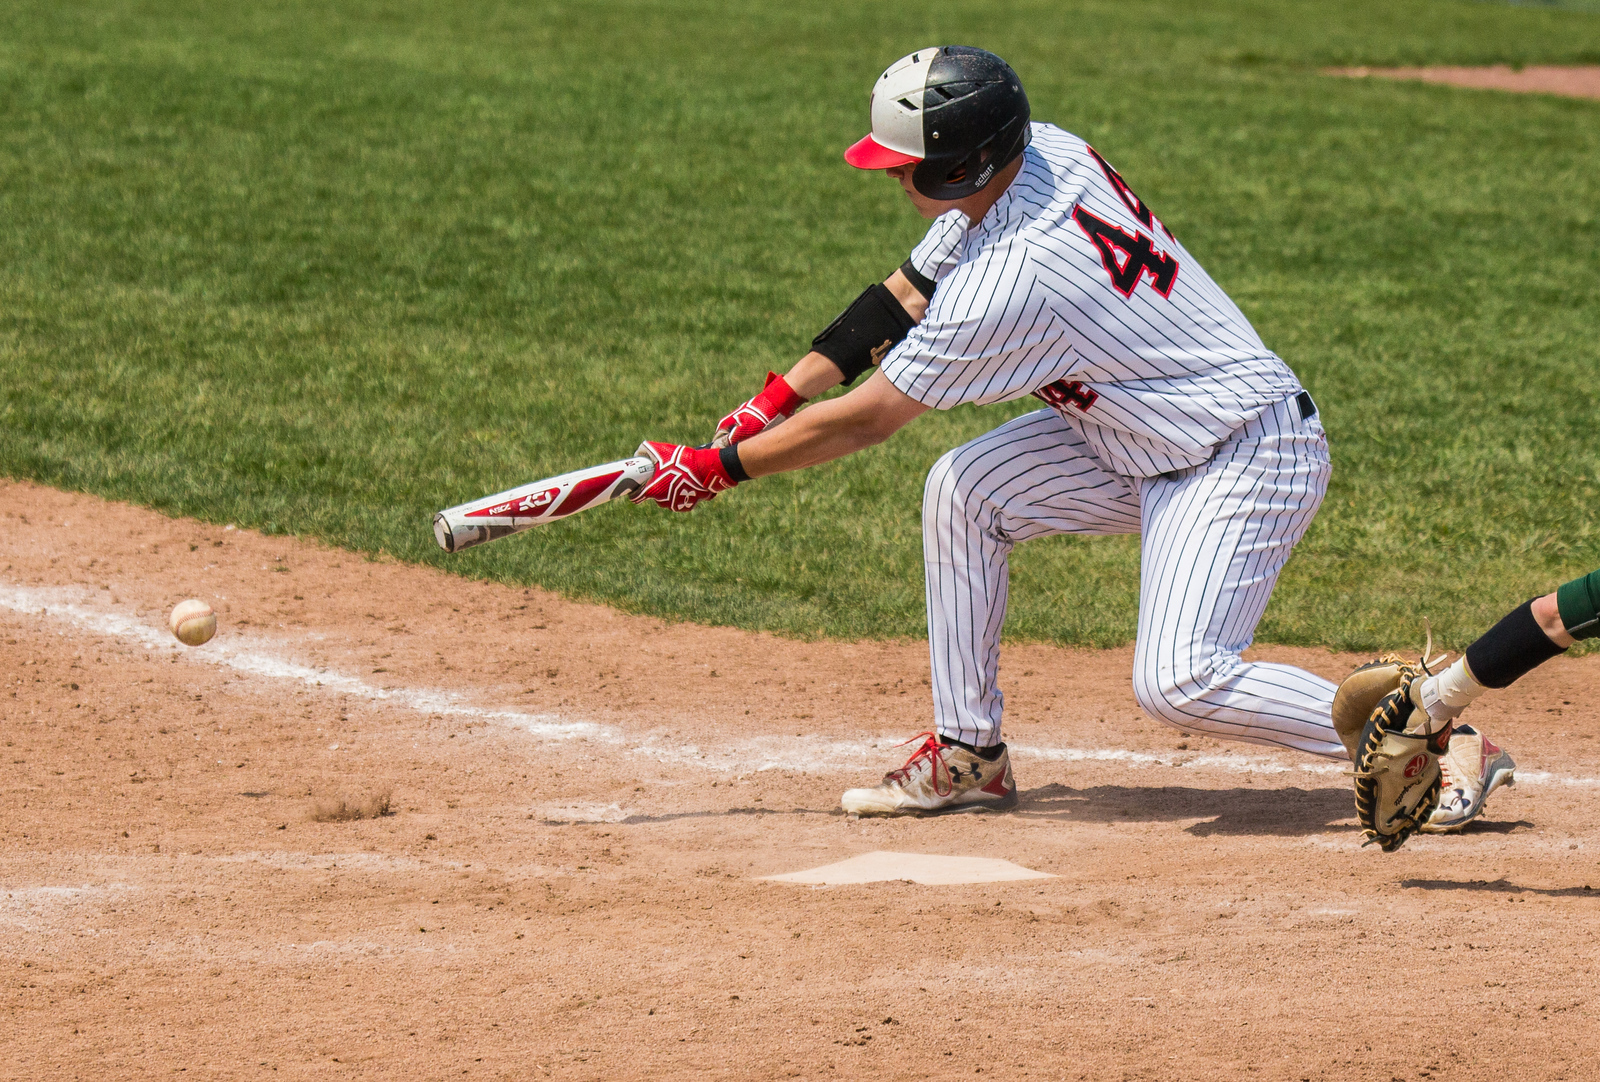 Huntley's Noah Konie lays down a sacrifice bunt in the eighth inning against Crystal Lake South Saturday, May 13, 2017 at Huntley High School. Huntley went on to win in walk-off fashion 2-1. KKoontz – for Shaw Media